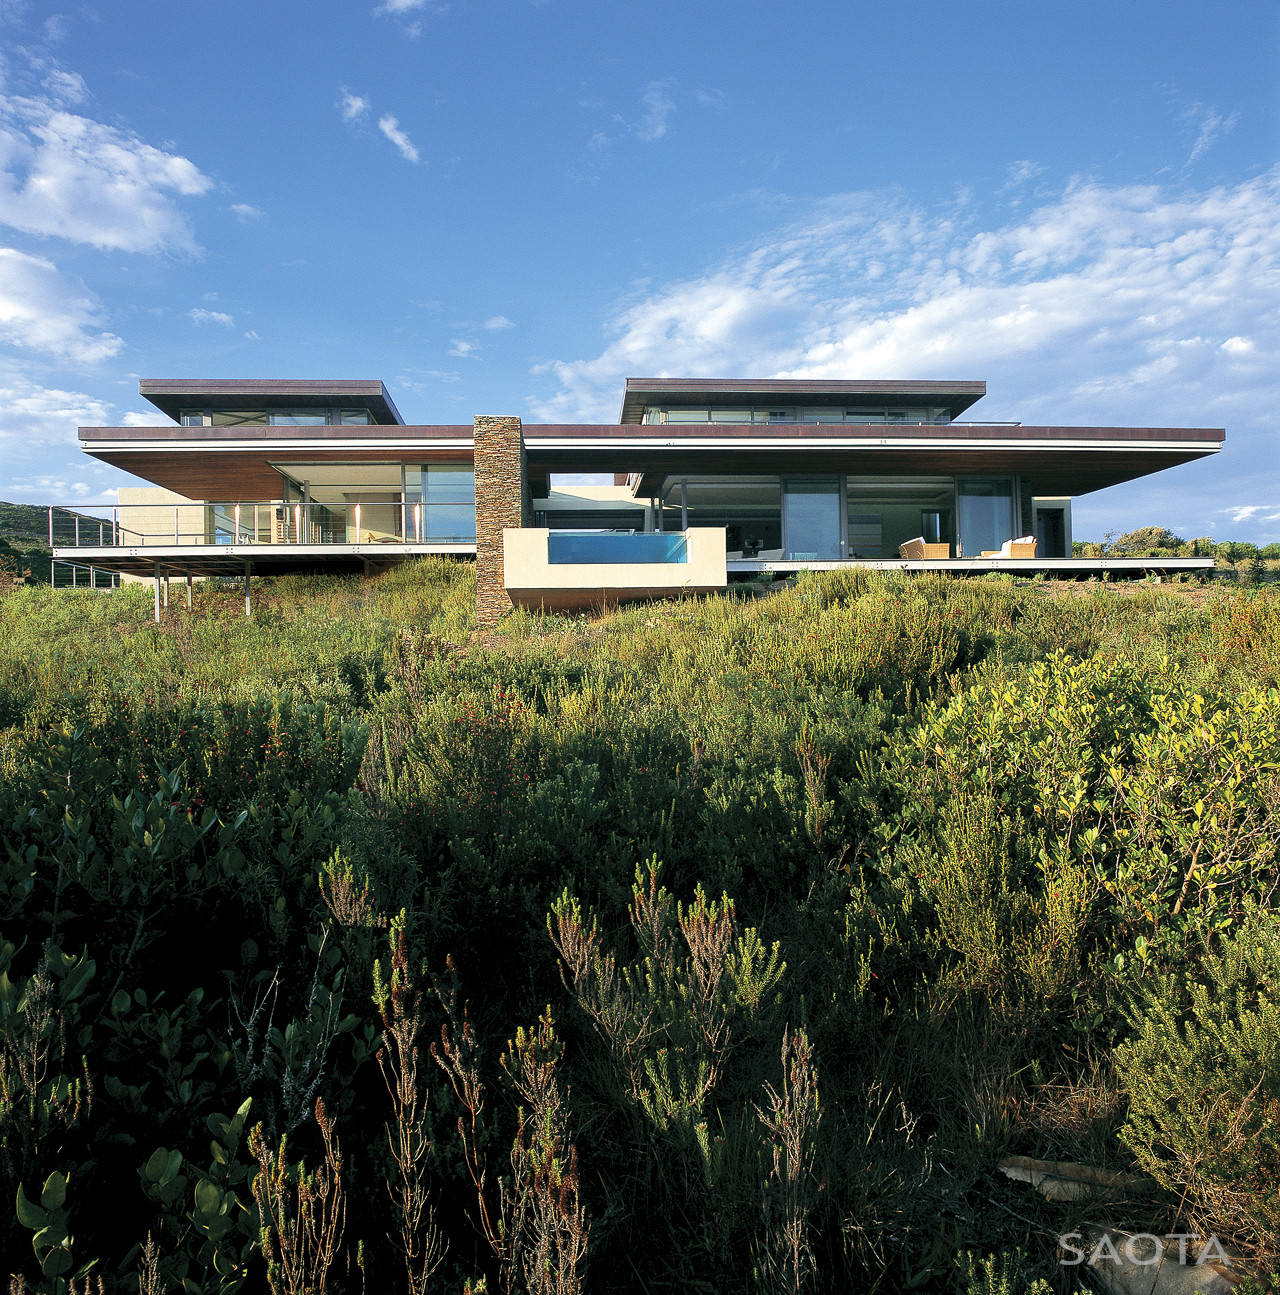 Gallery of cove 6 saota stefan antoni olmesdahl truen for The cove house